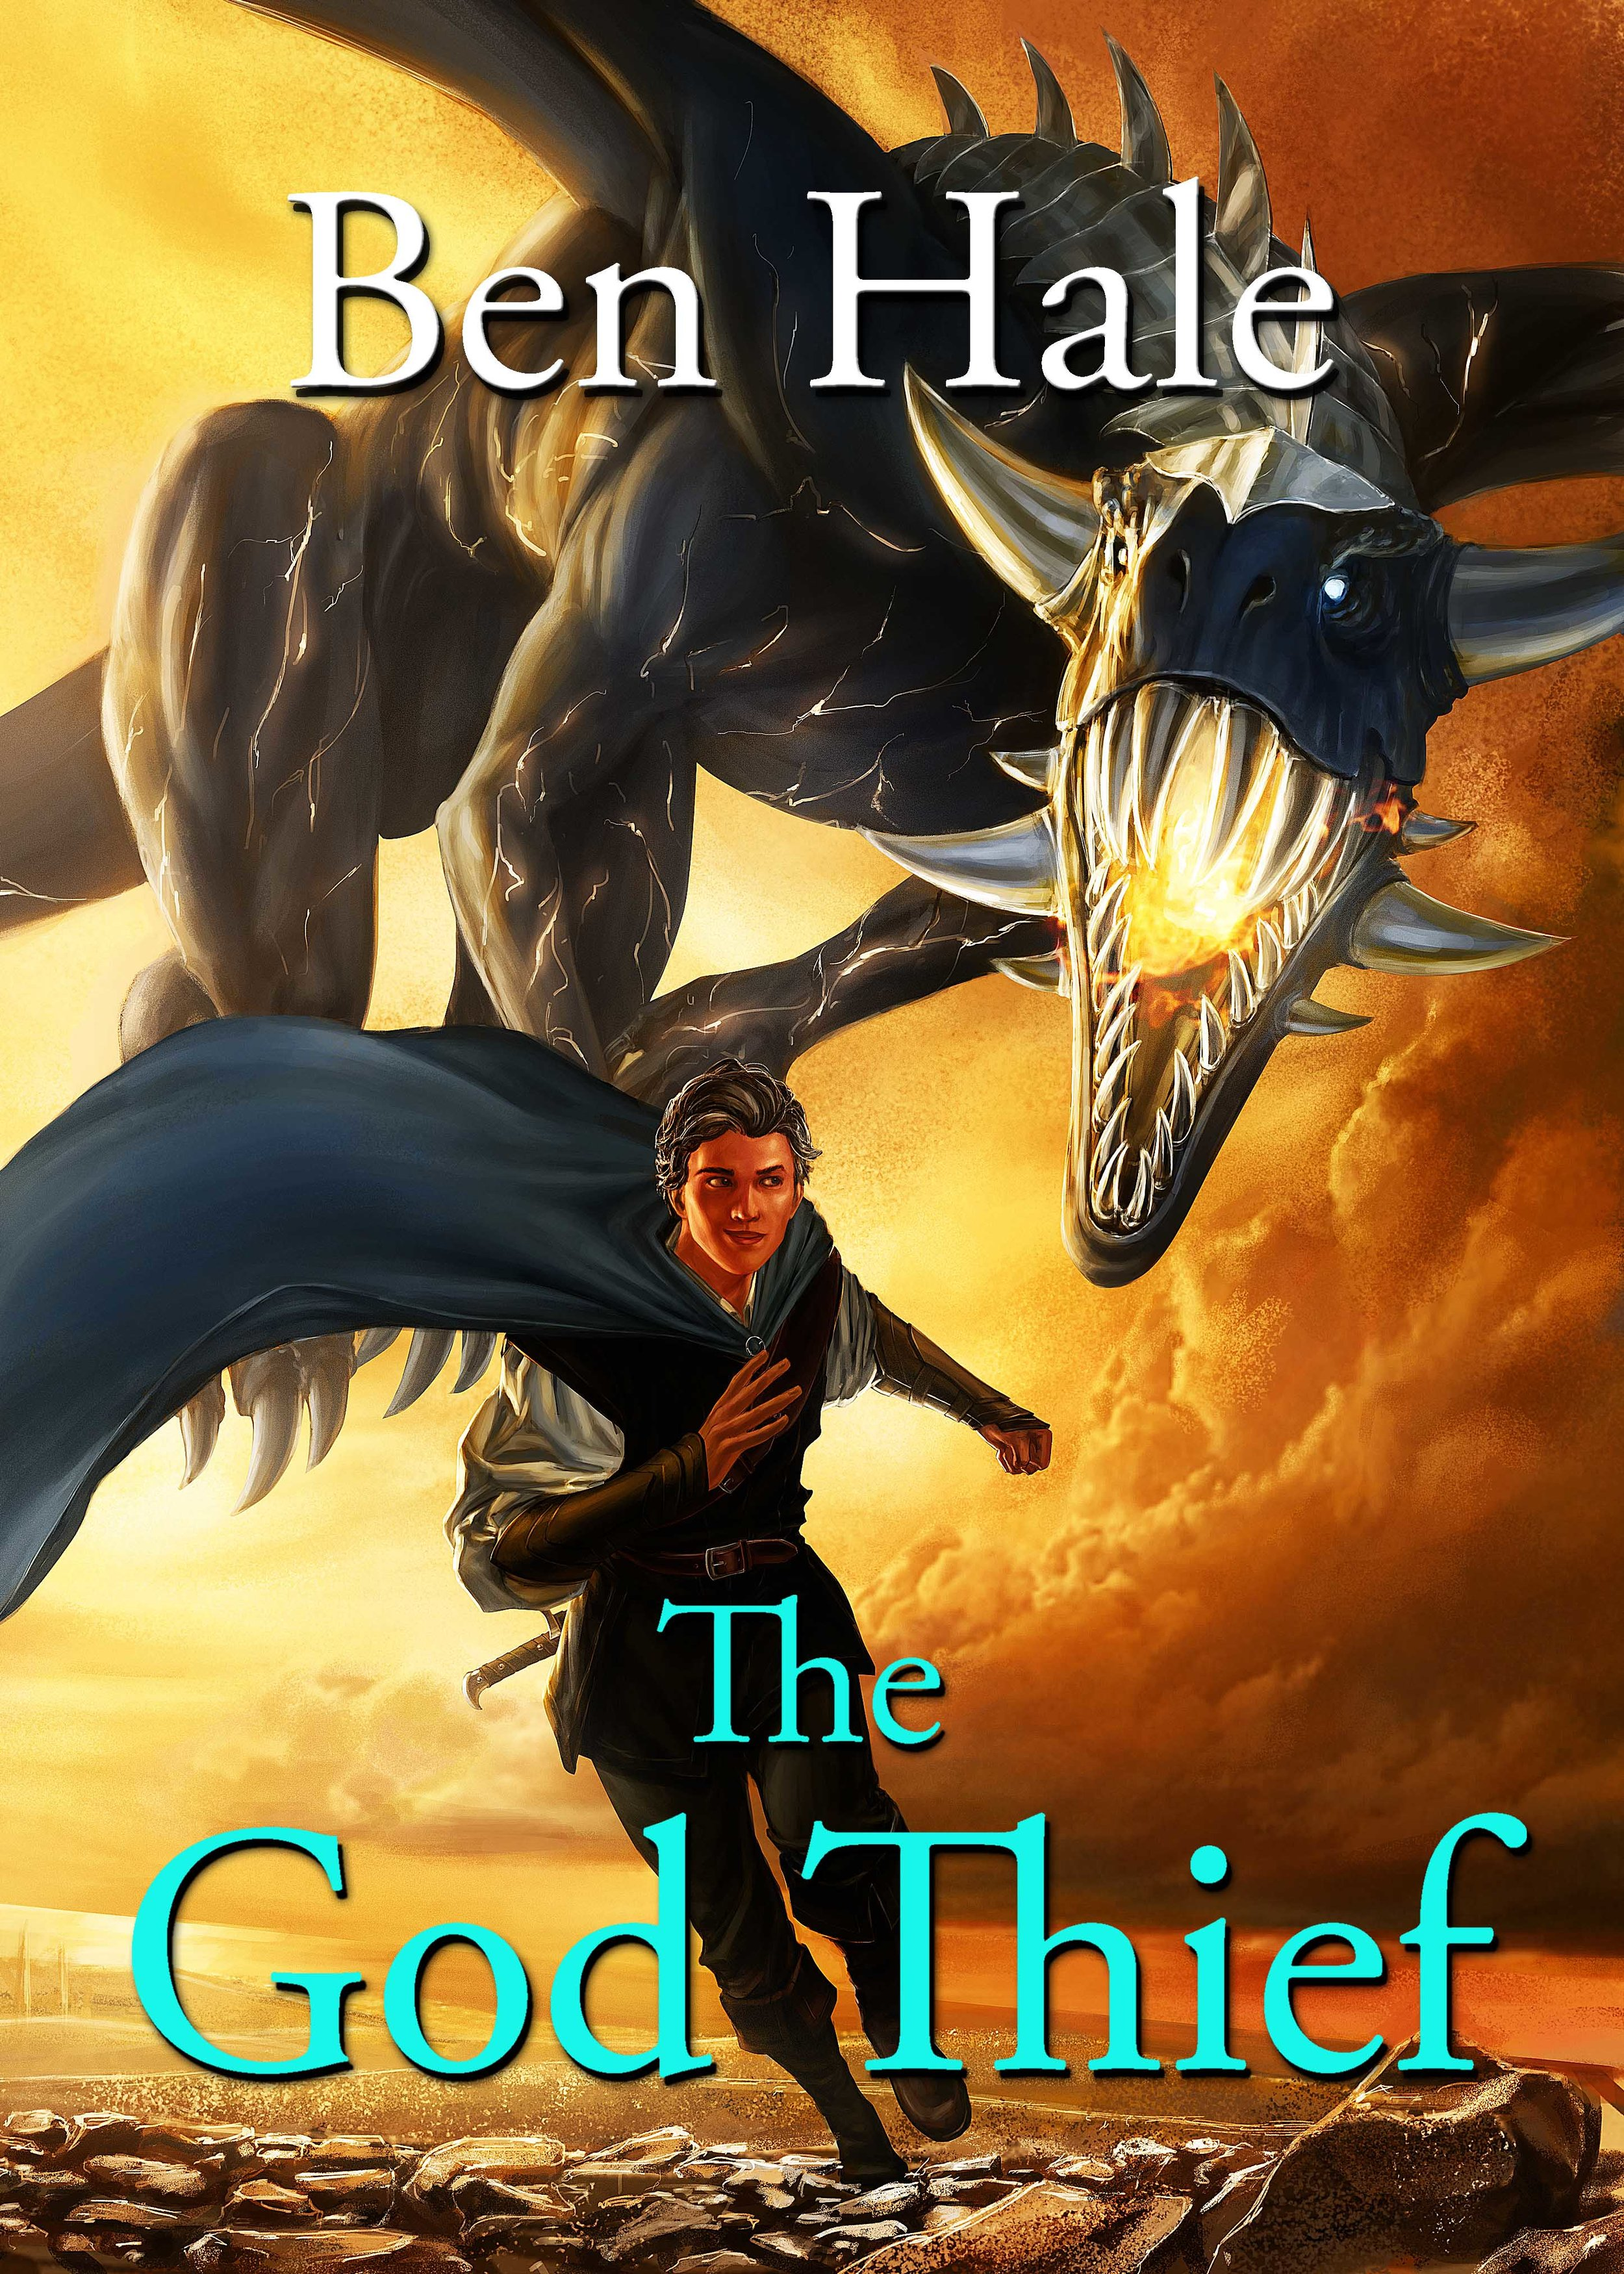 The God Thief Cover 1 low res.jpg